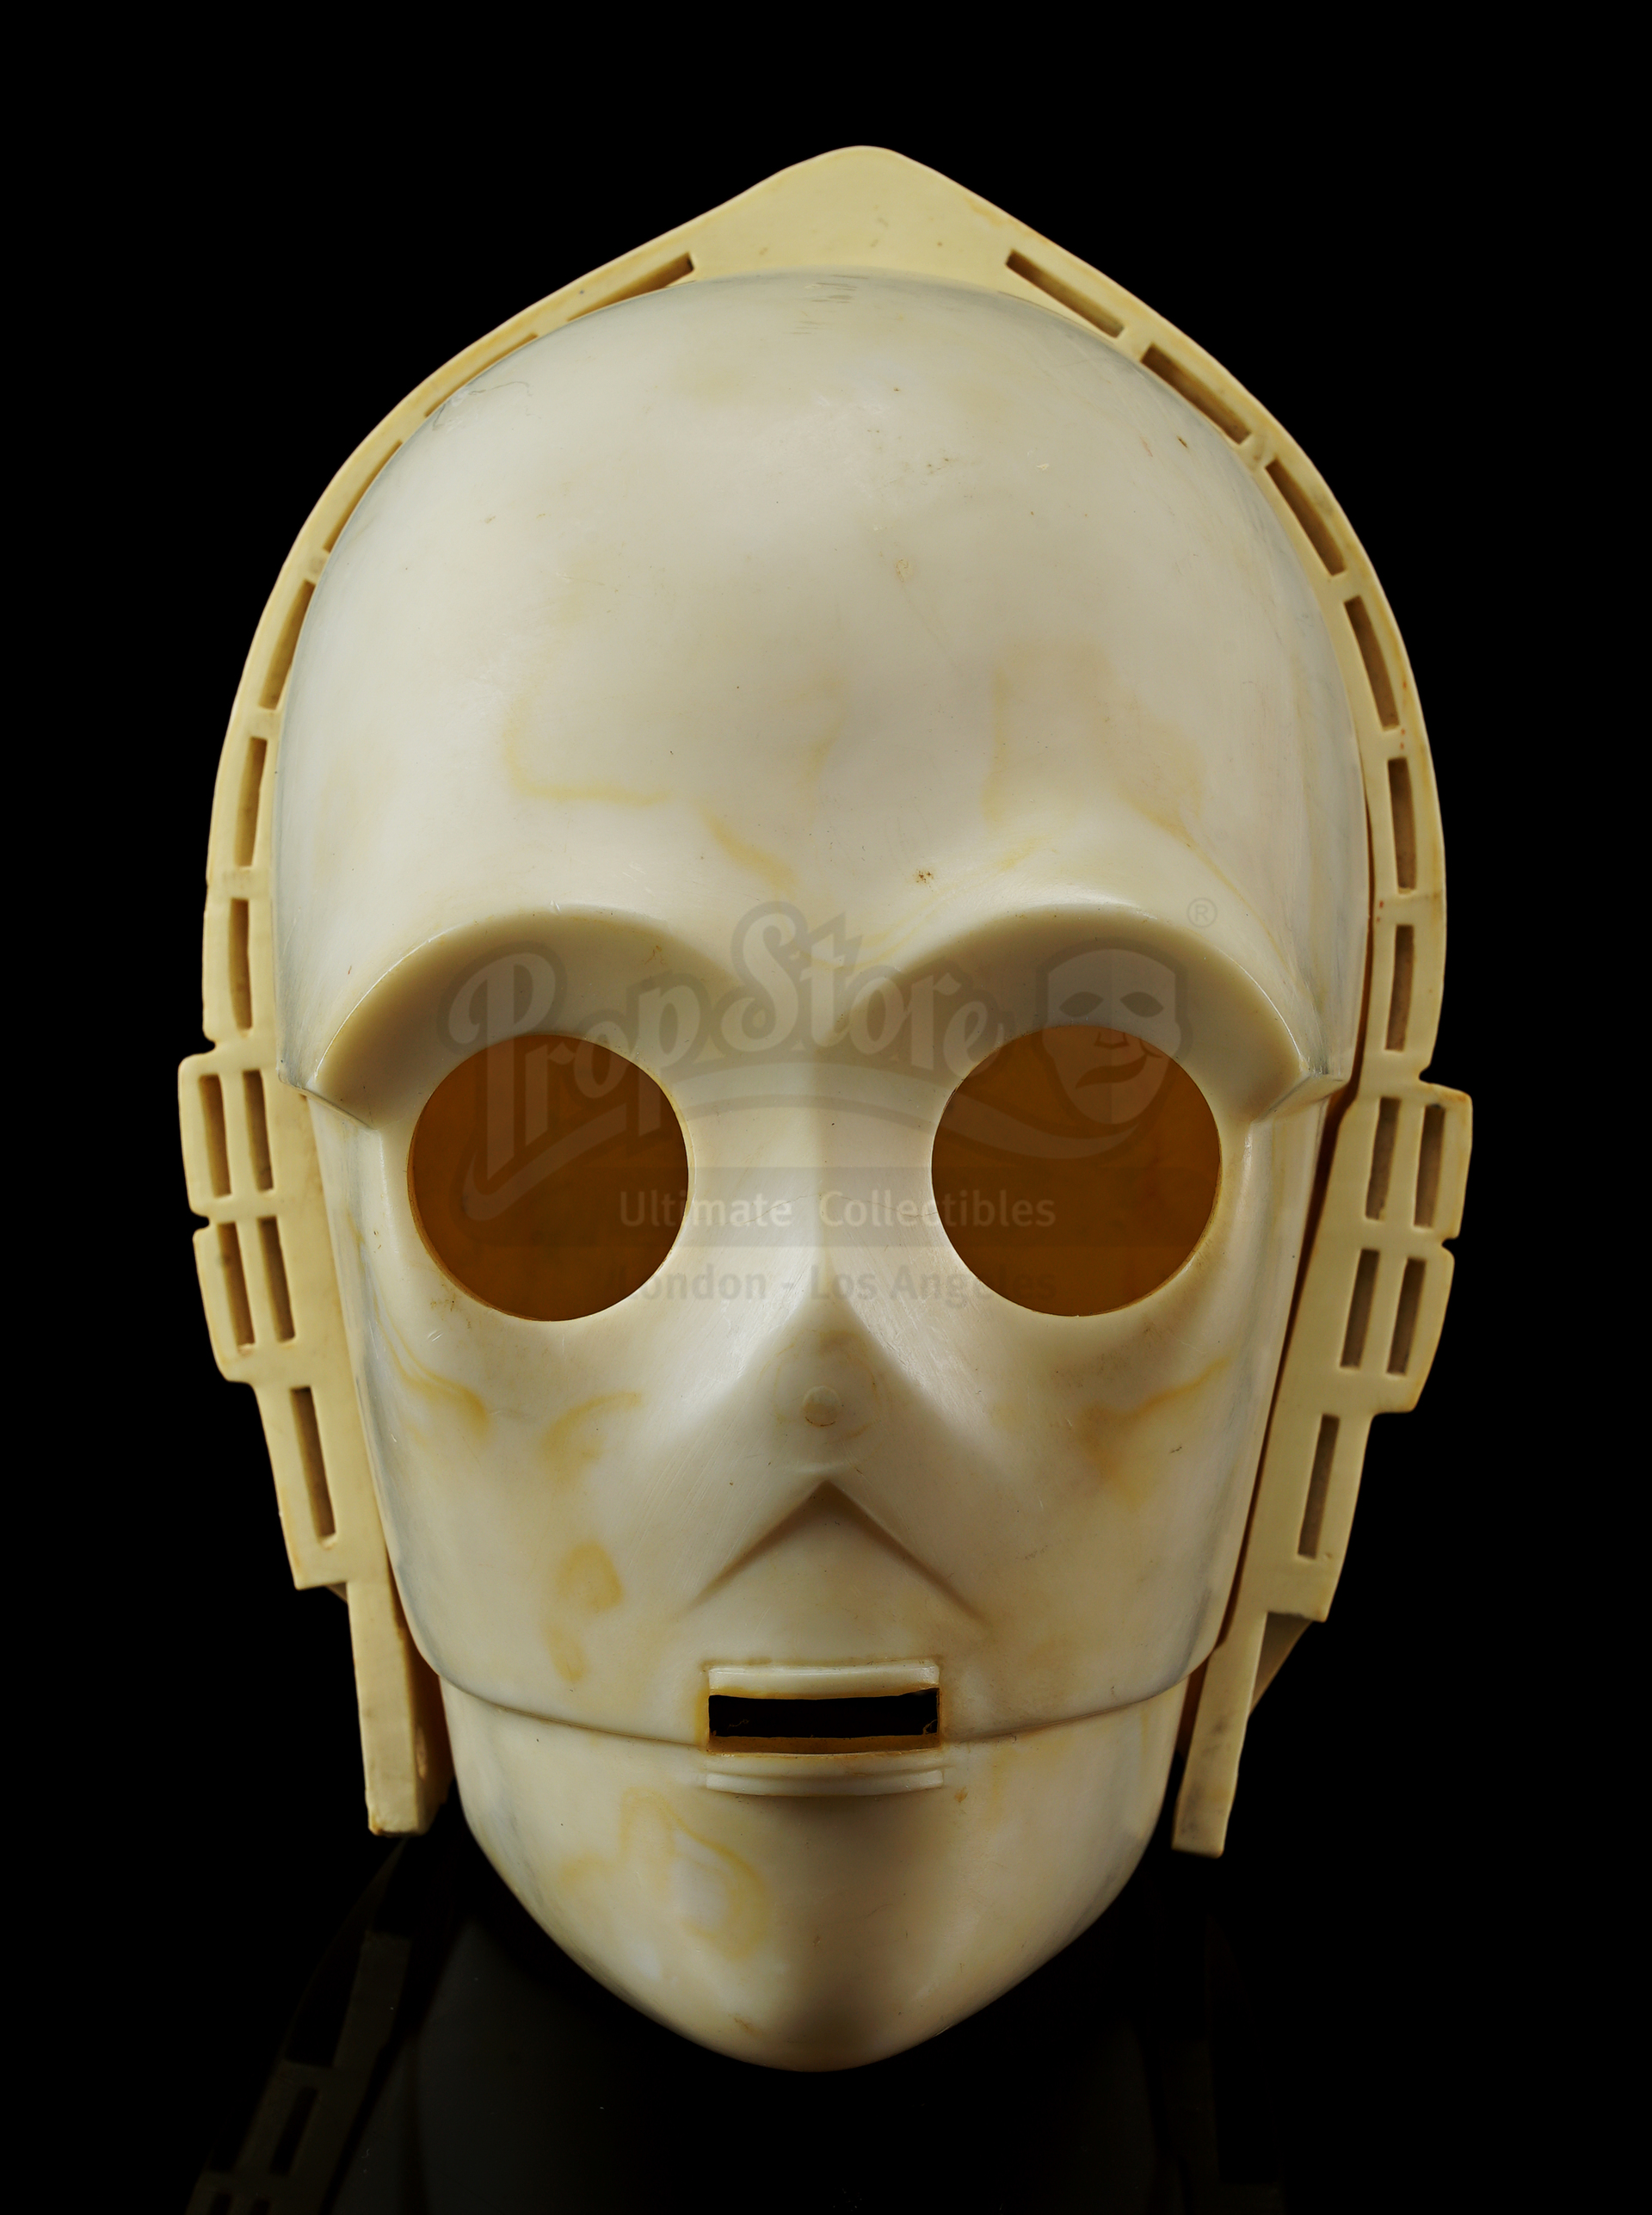 Lot # 302: STAR WARS - EP V - THE EMPIRE STRIKES BACK - C-3PO (Anthony Daniels) Prototype Injection